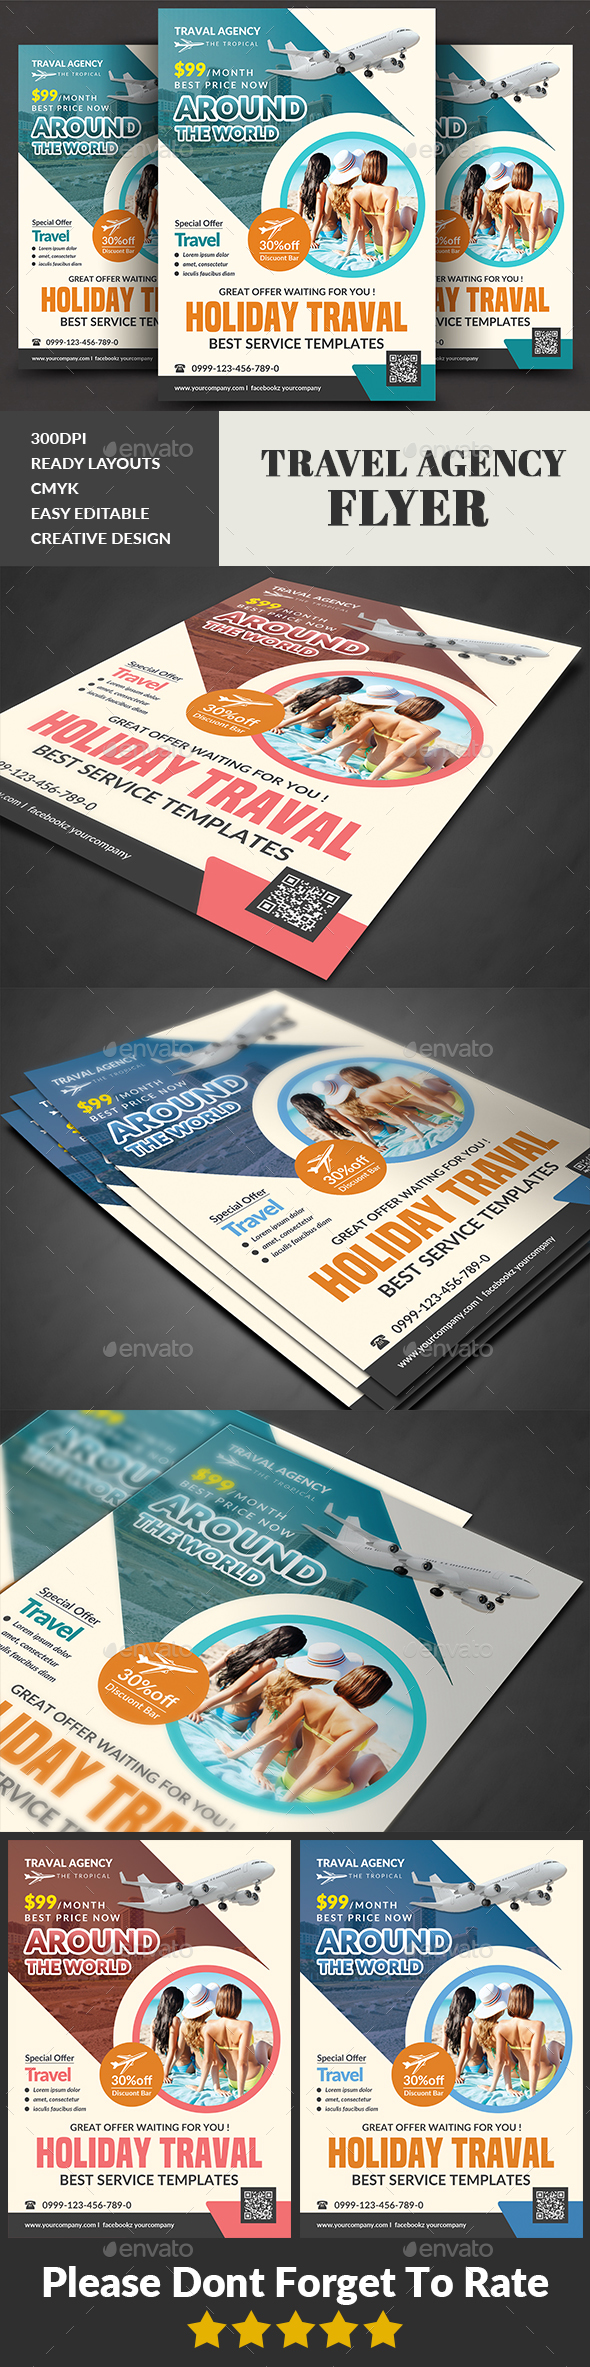 Travel Agency Flyer Templates - Corporate Flyers